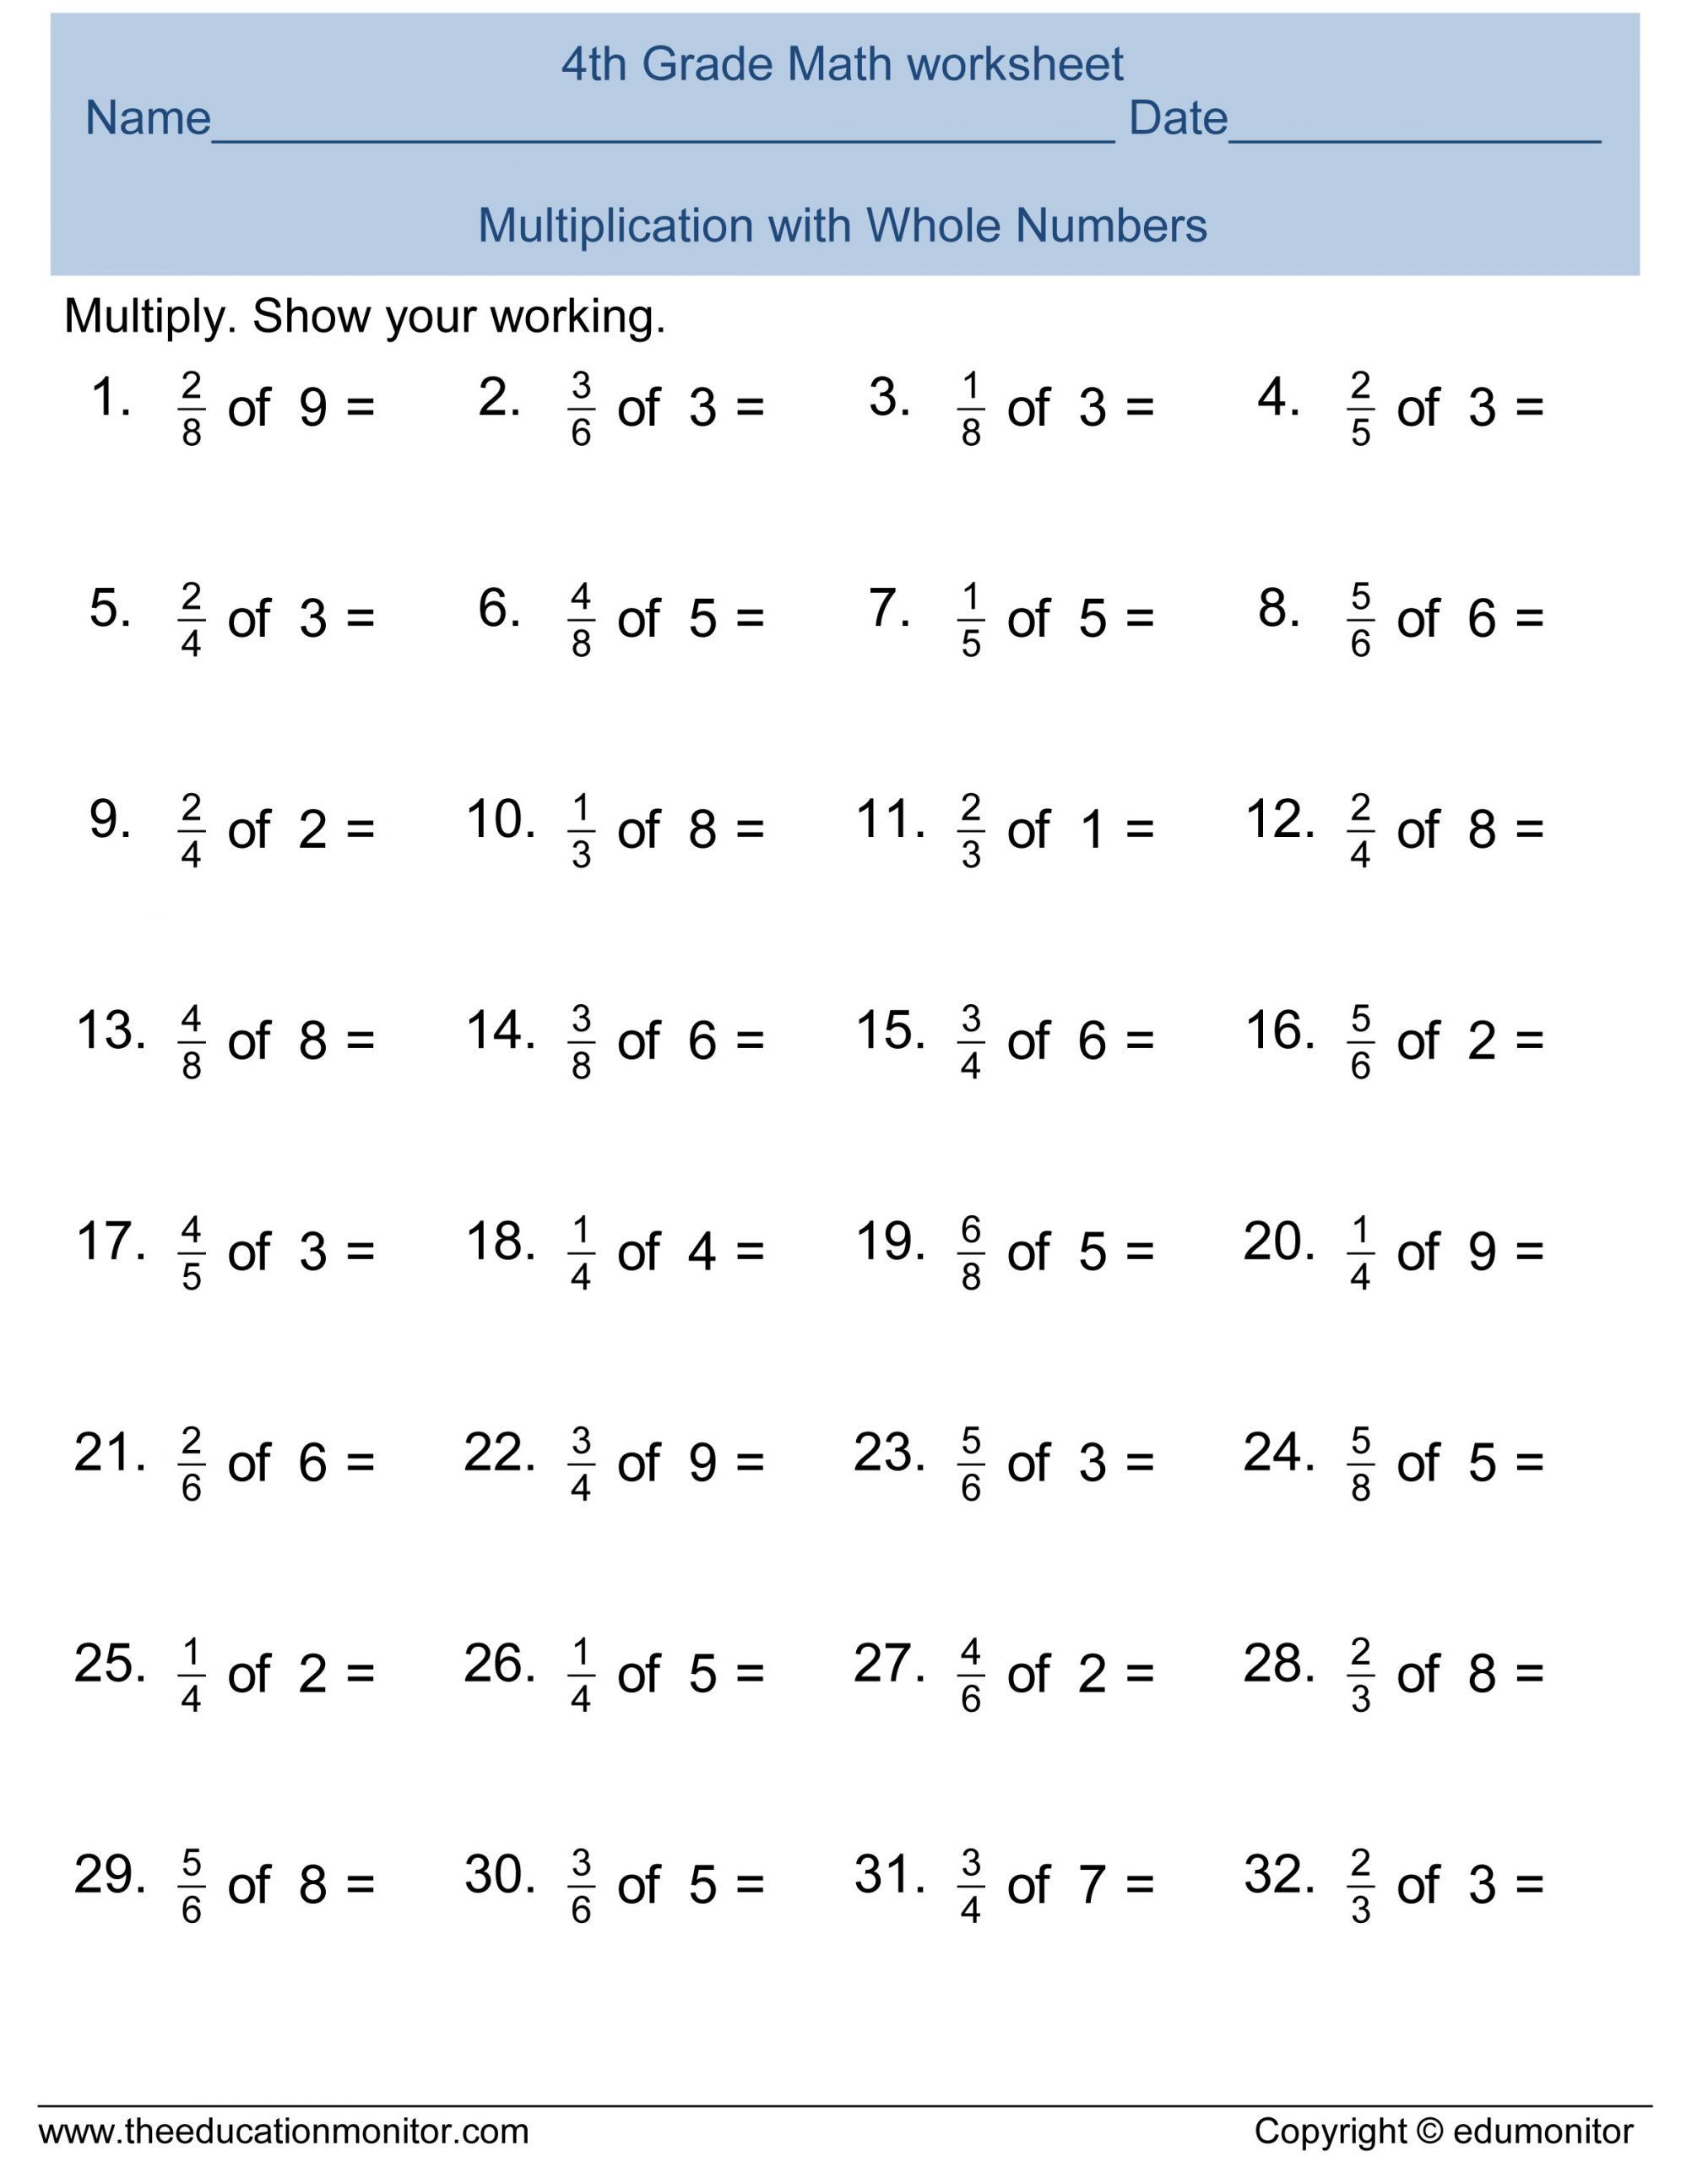 2nd Grade Fractions Worksheet Free 4th Grade Fractions